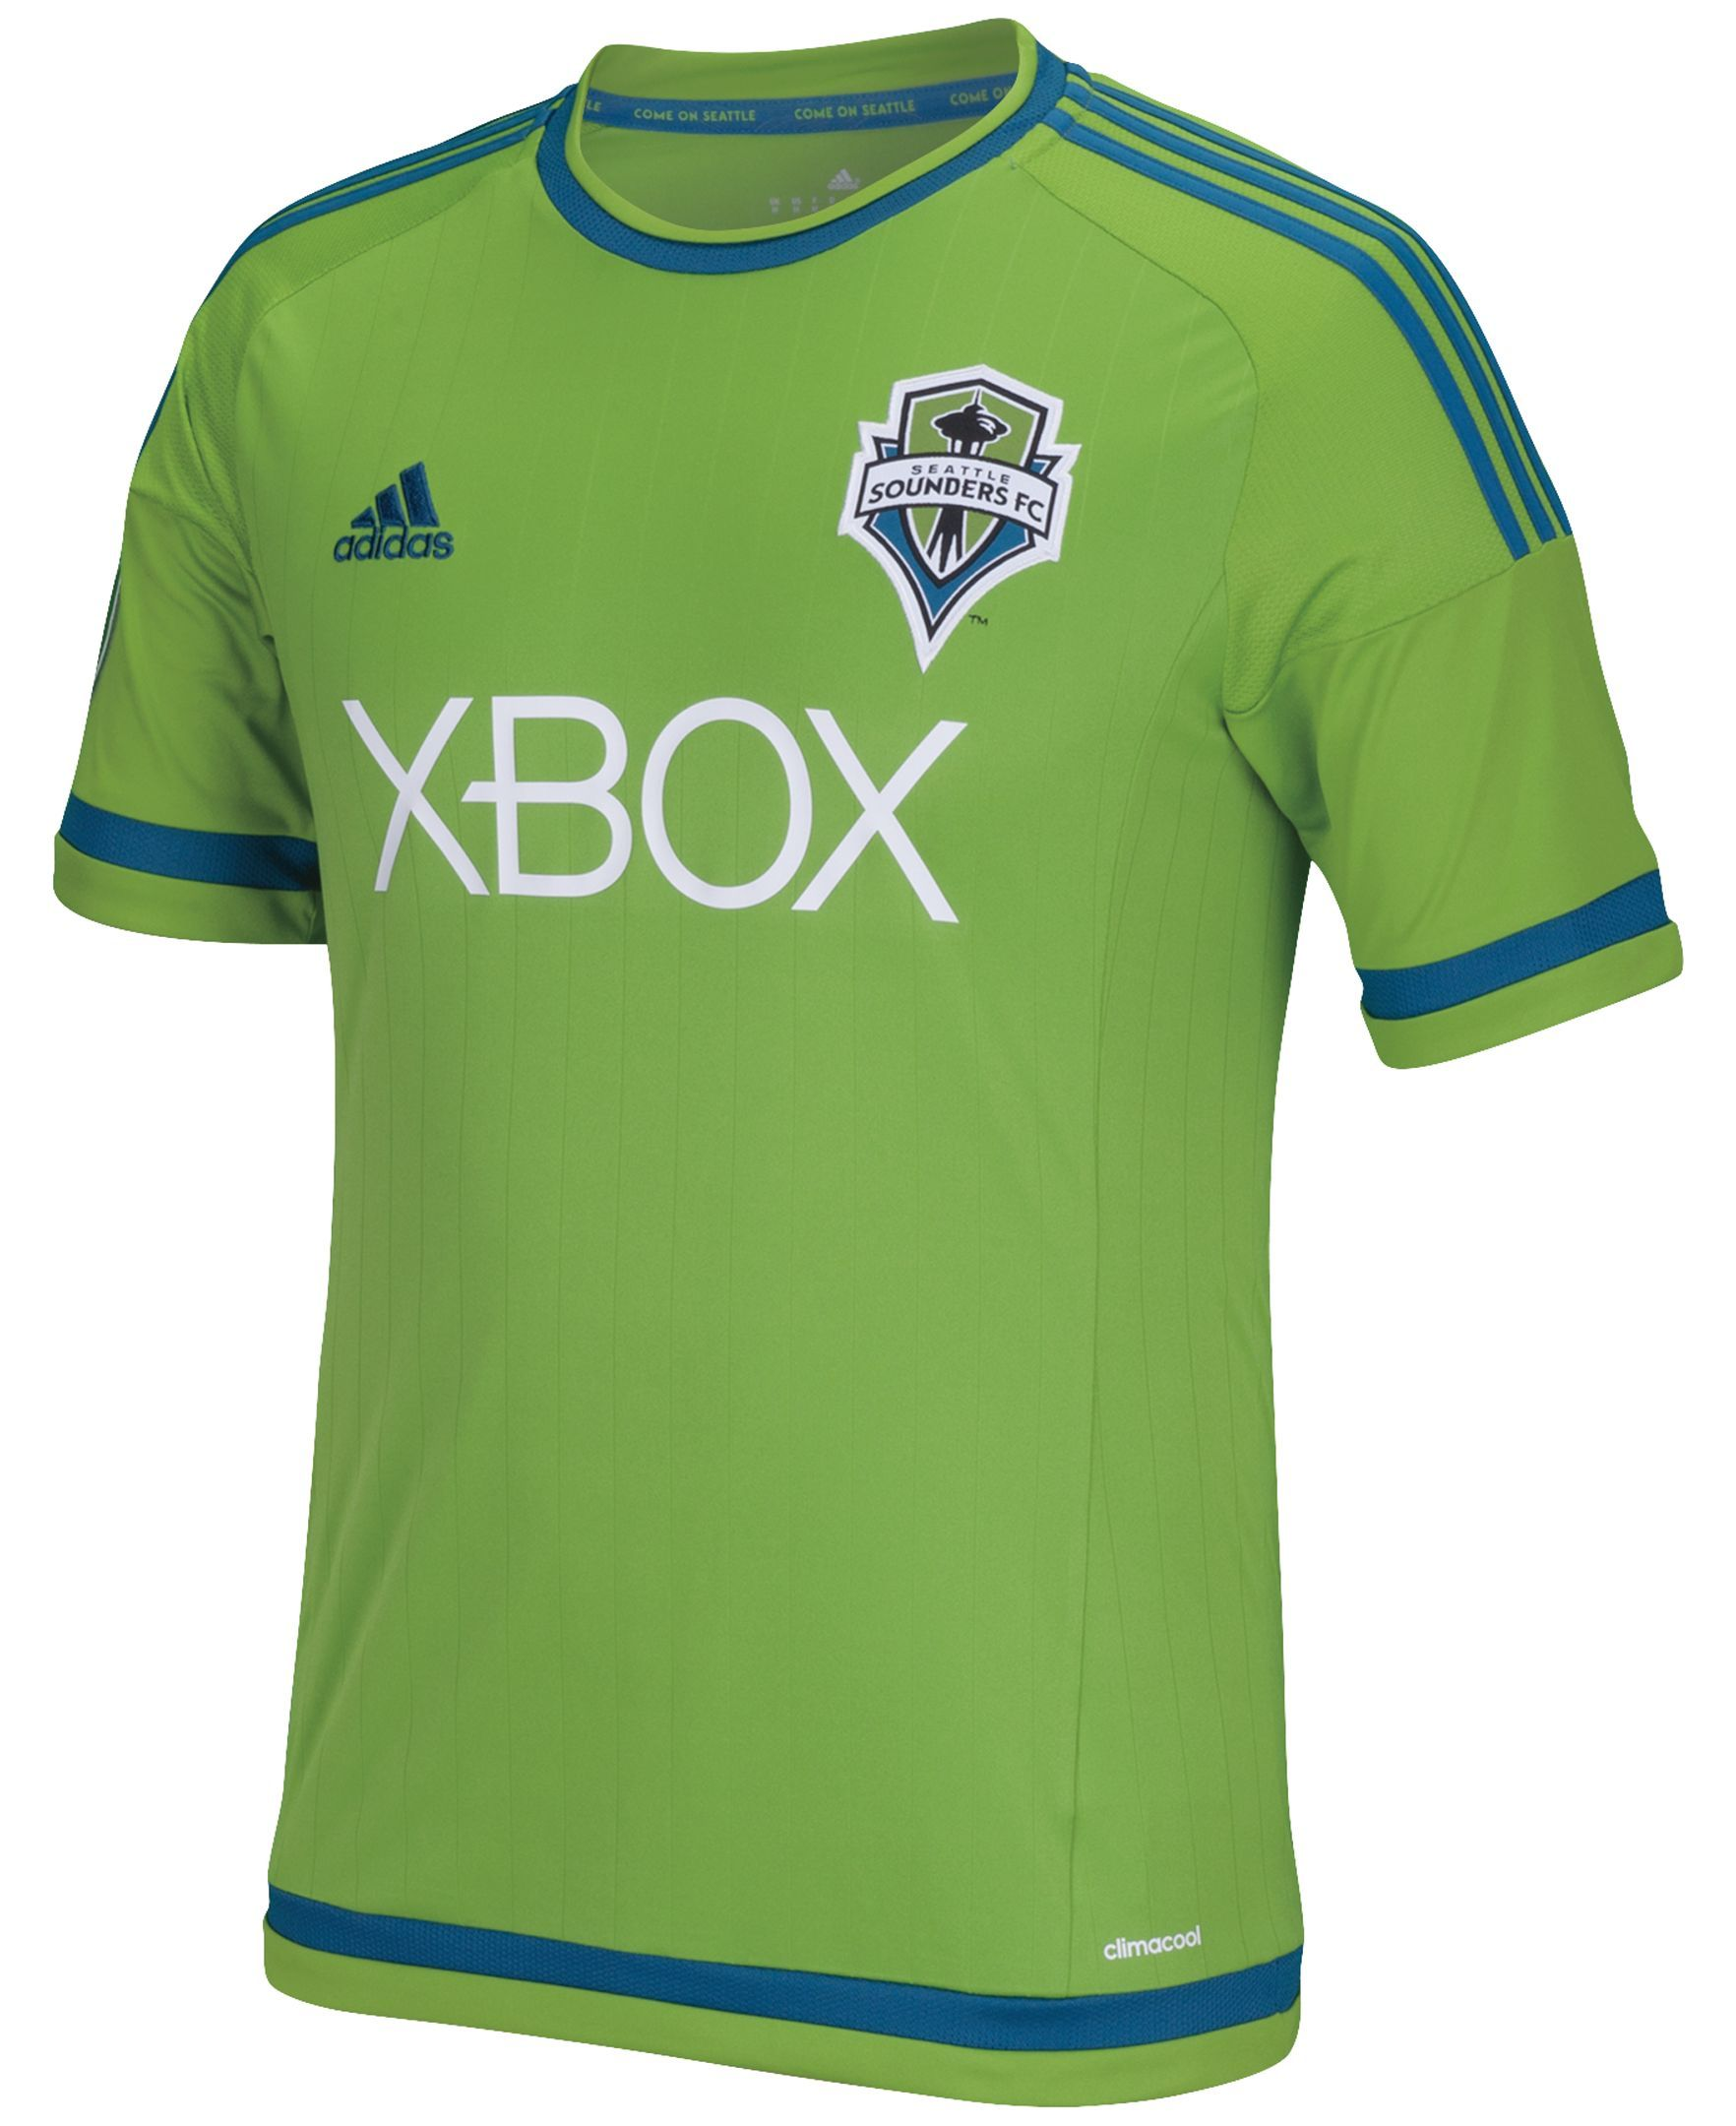 online store b86ad 4a50a adidas Men's Seattle Sounders Replica Jersey   Products ...